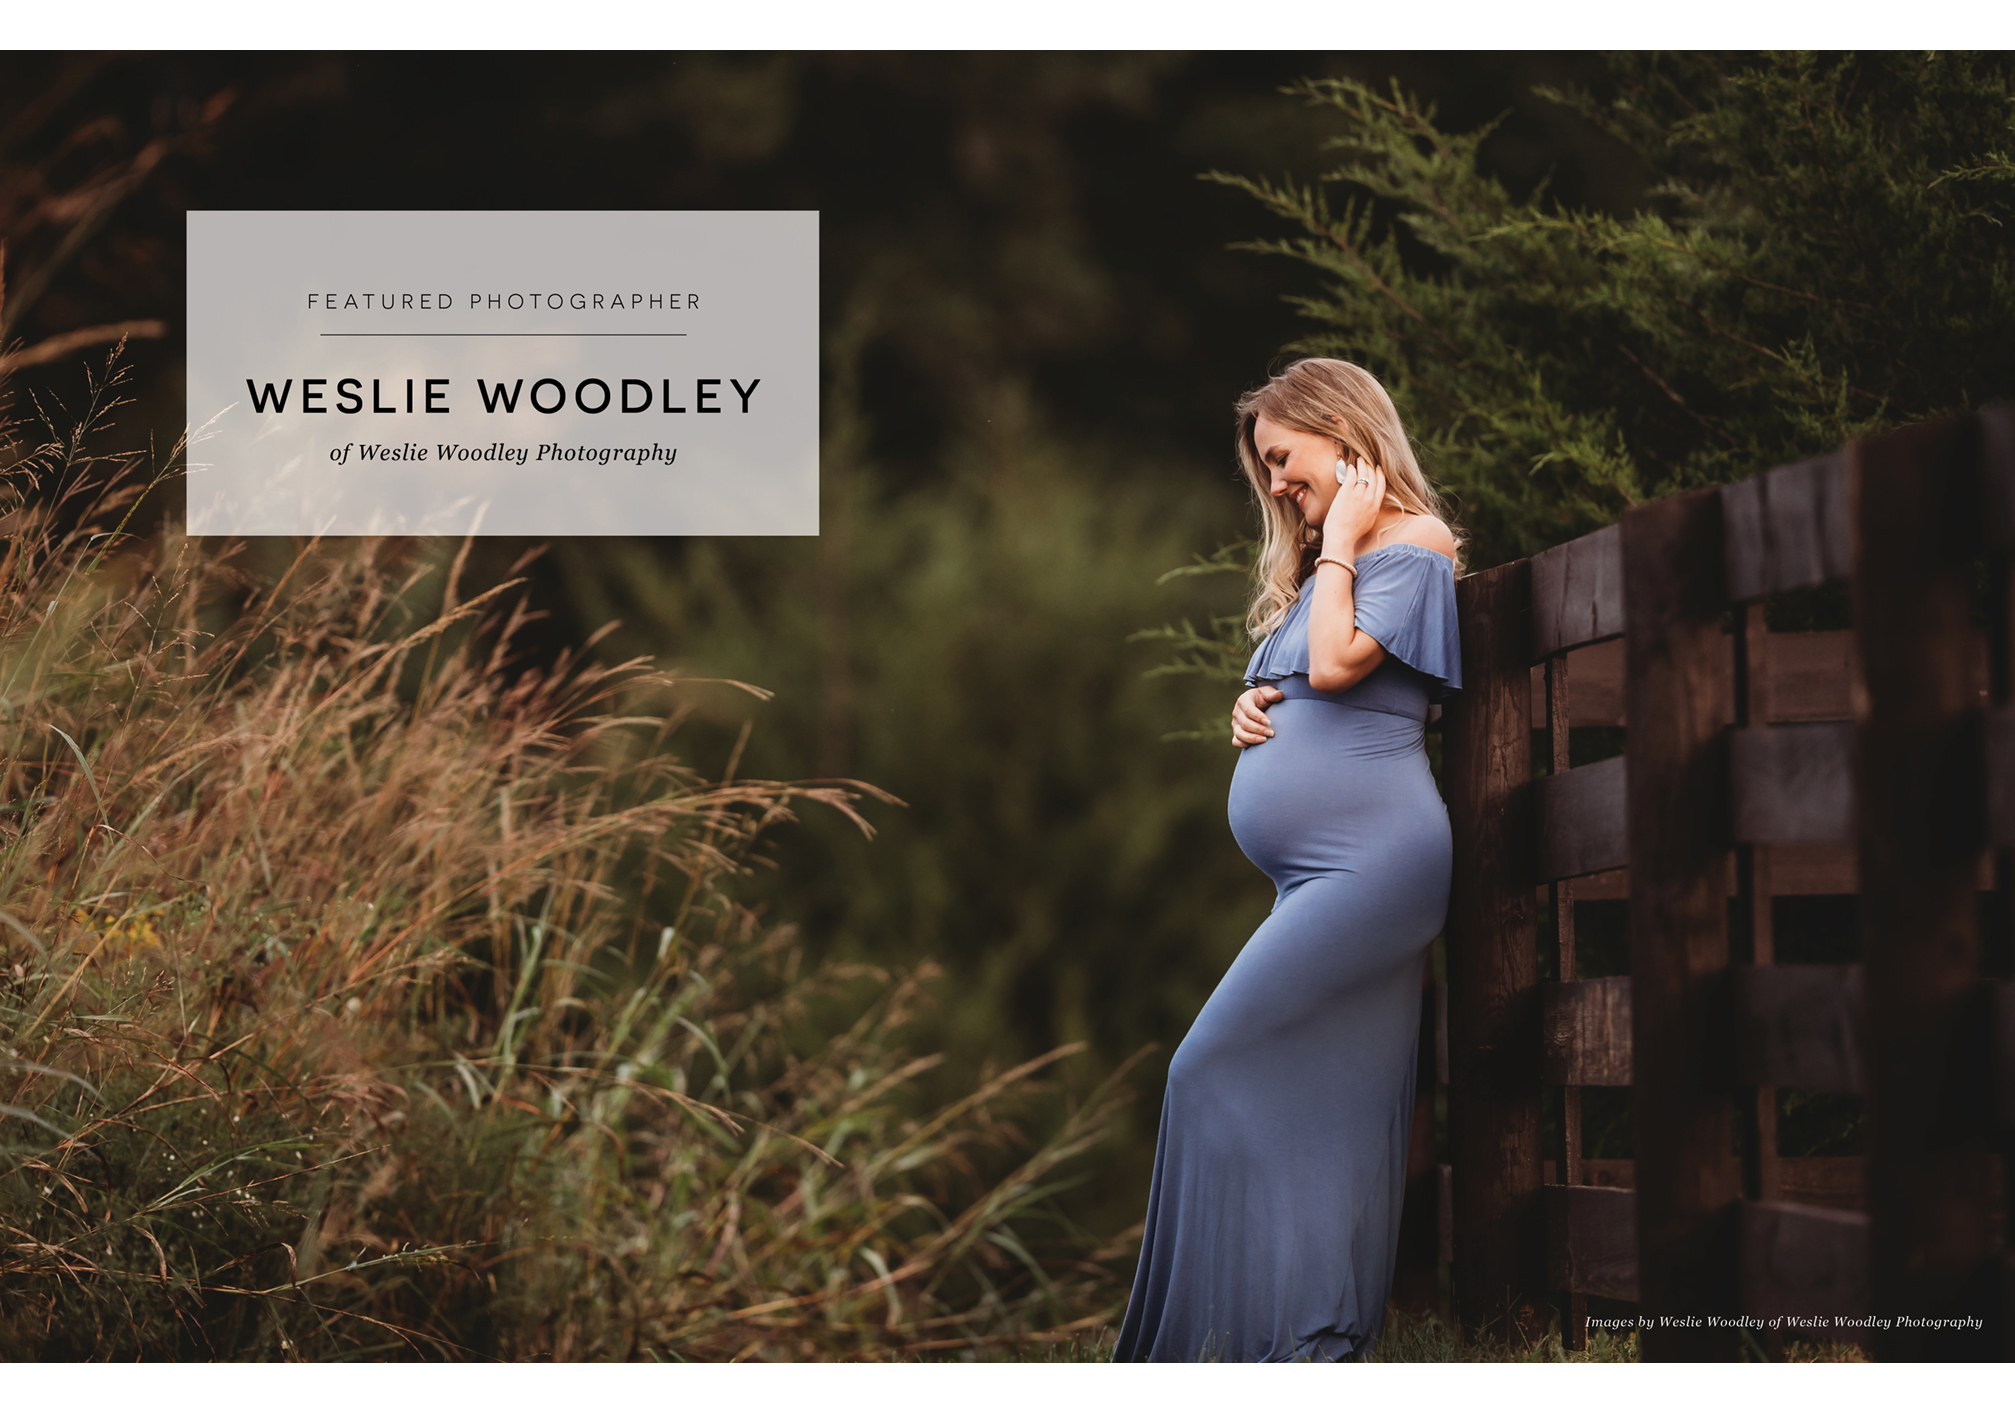 pregnant woman wearing blue dress, leaning against a farm fence